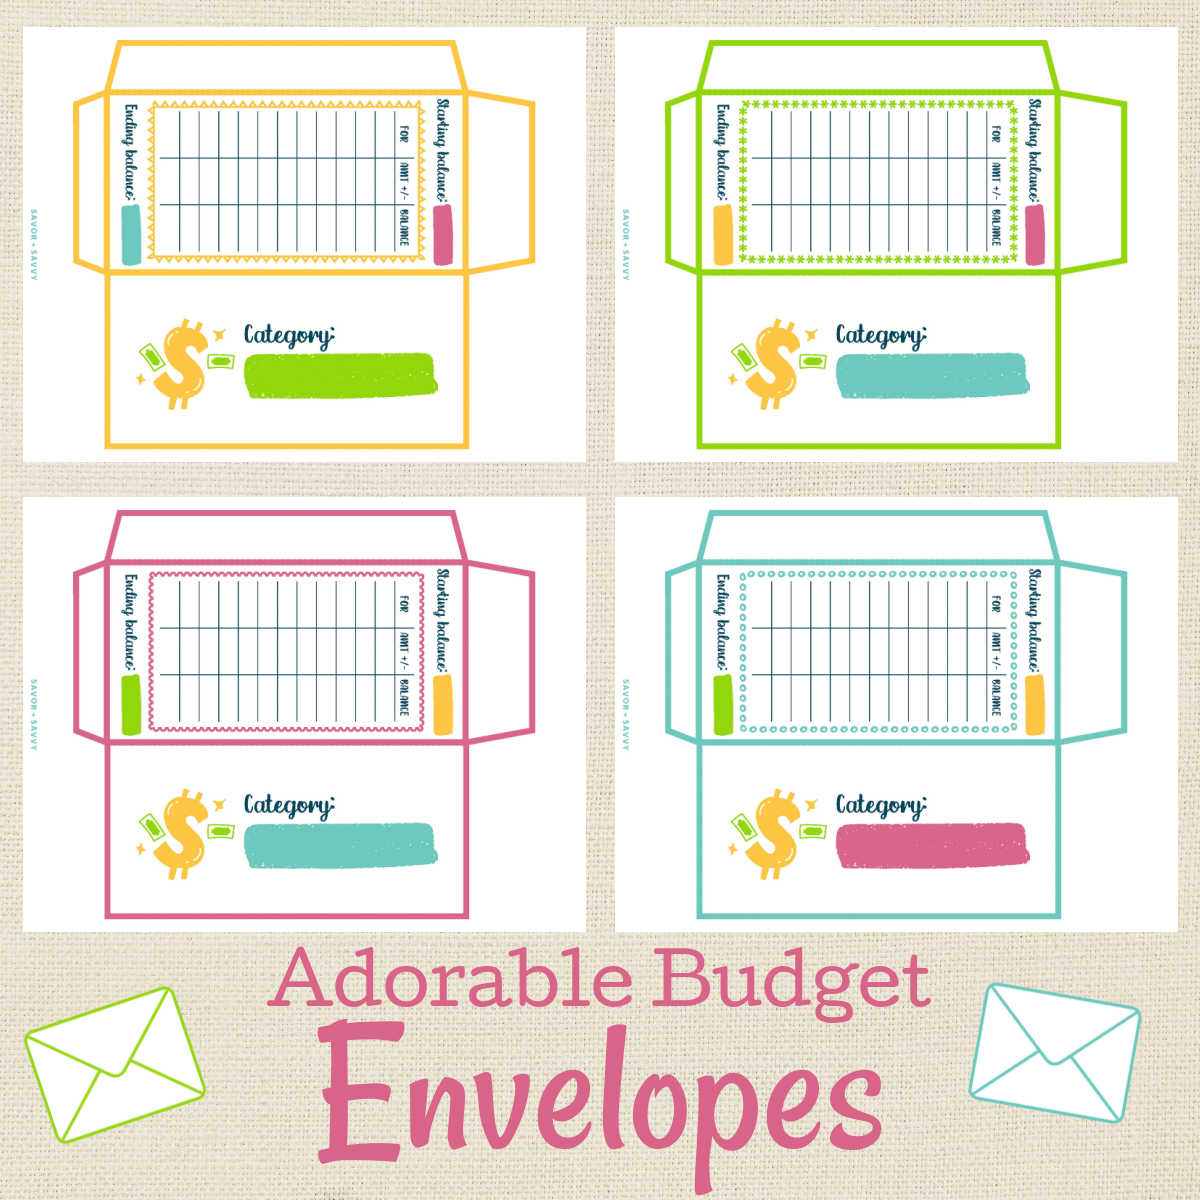 four different envelope templates in different colors.